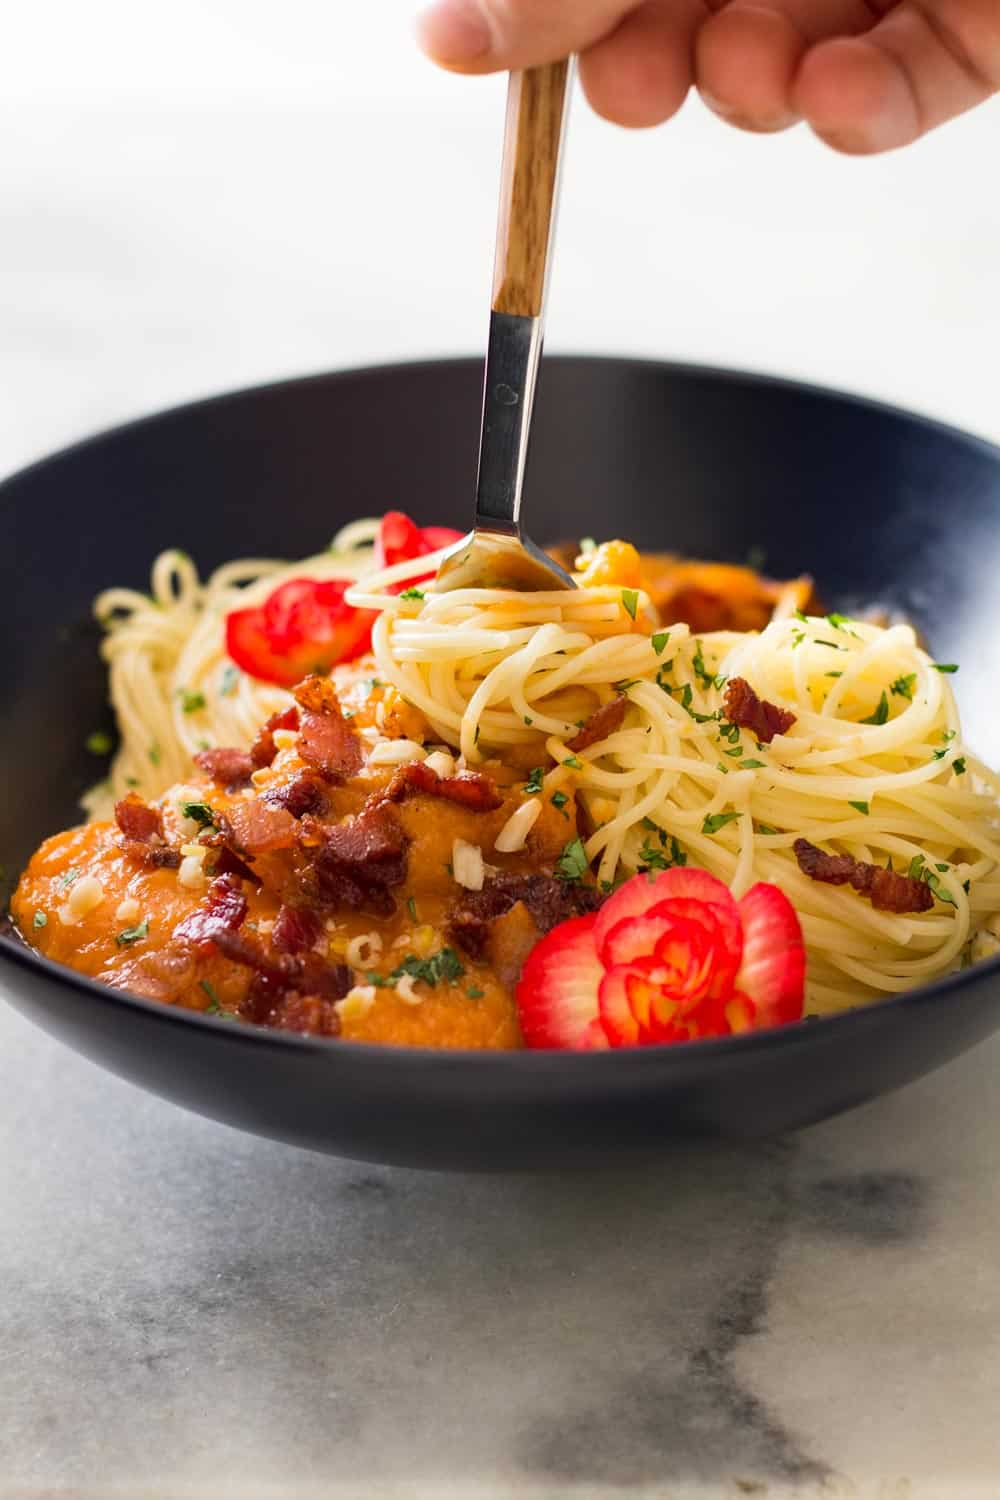 Hand grabbing spaghetti with a fork from a Butternut Squash Pasta with Bacon bowl.